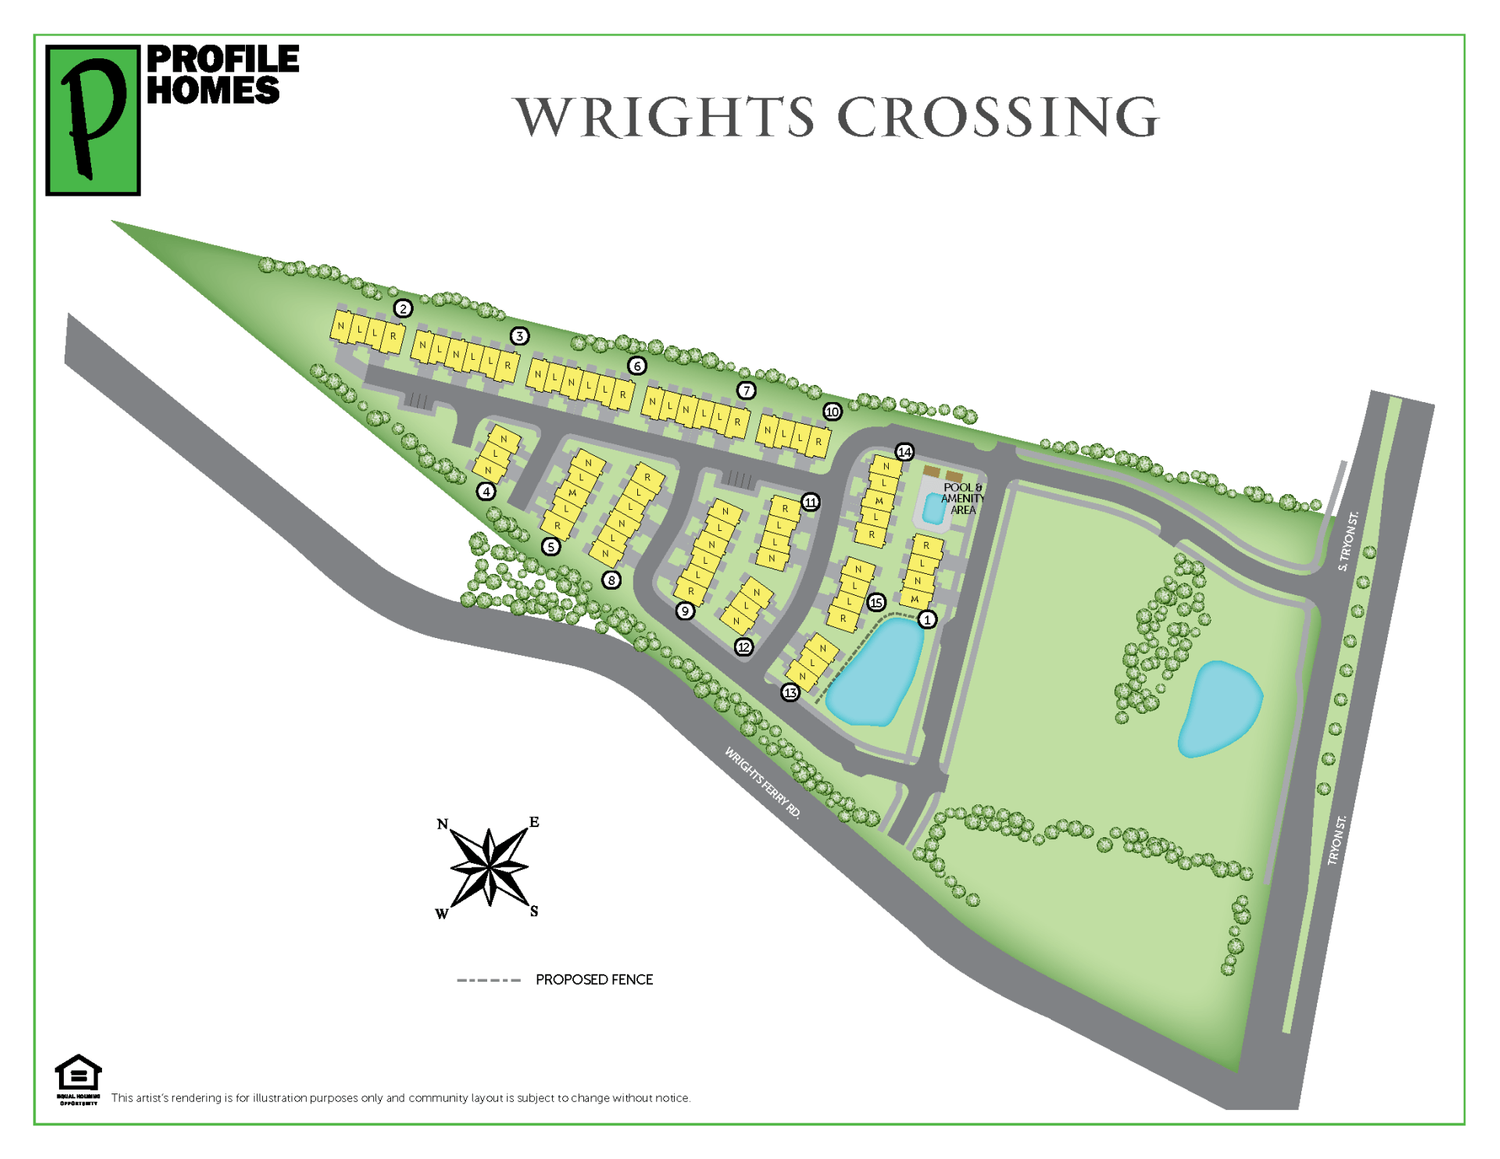 Wrights Crossing